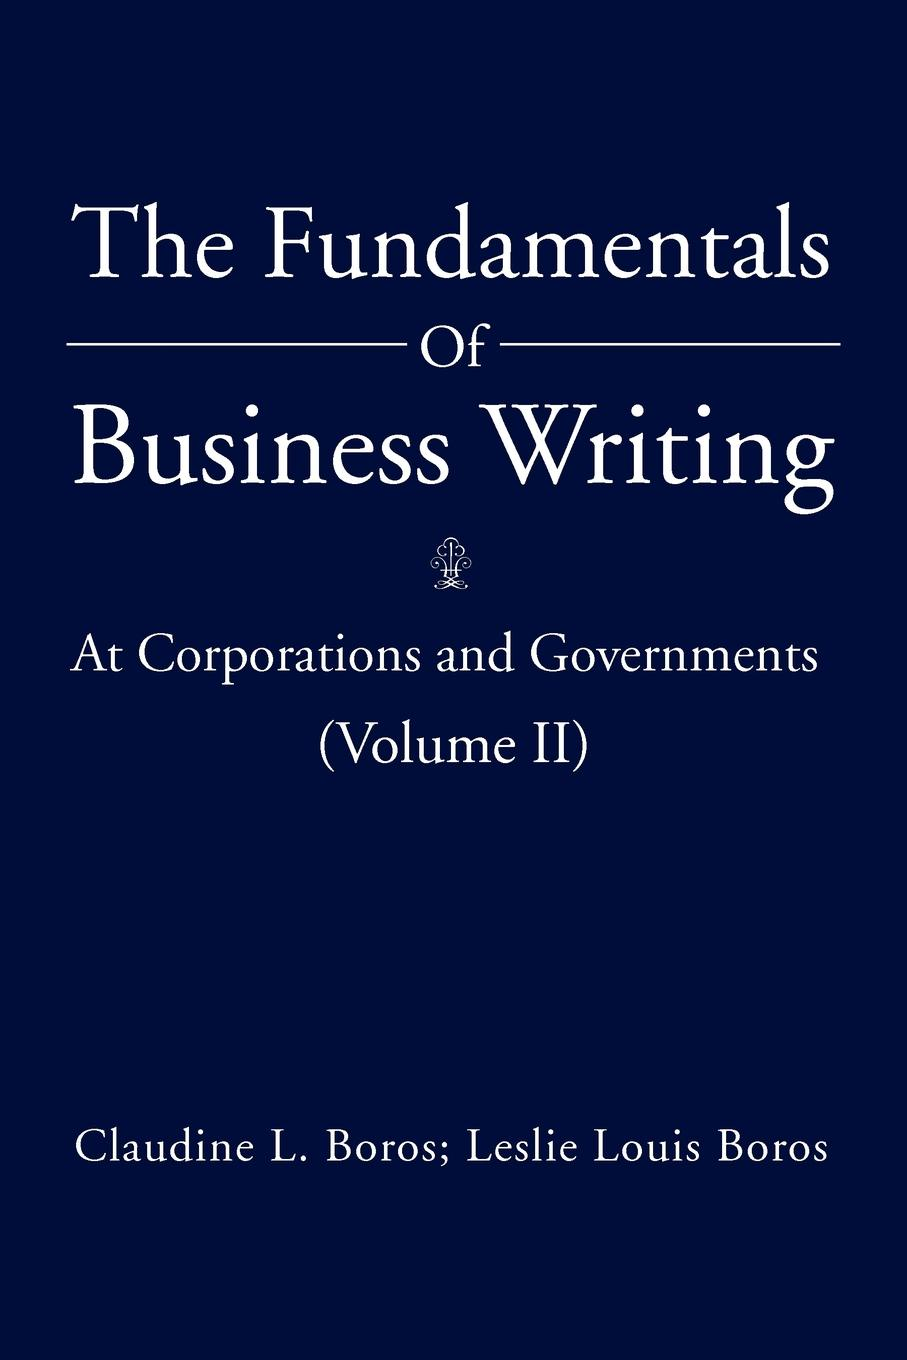 Claudine L. Boros, Leslie Louis Boros The Fundamentals Of Business Writing. : At Corporations and Governments (Volume II) цена